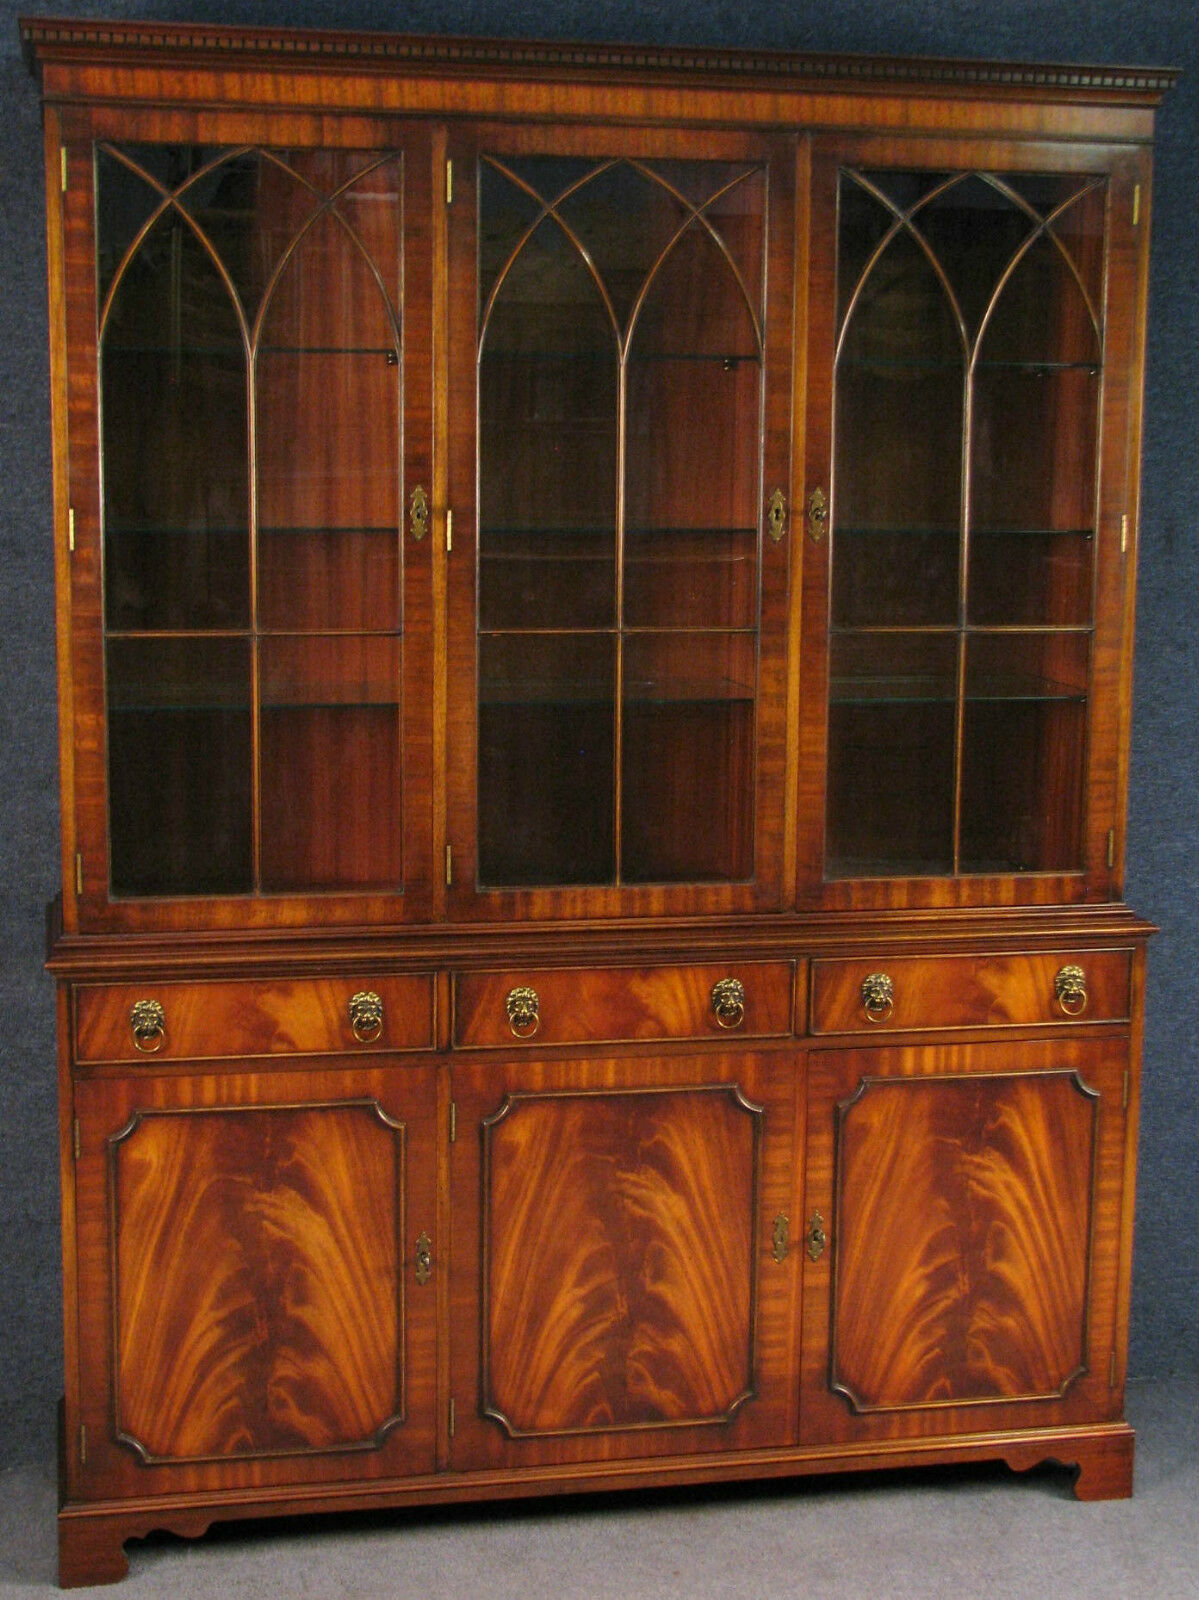 Reprodux Bevan Funnell Georgian Style Flame Mahogany Display Cabinet On Cupboard